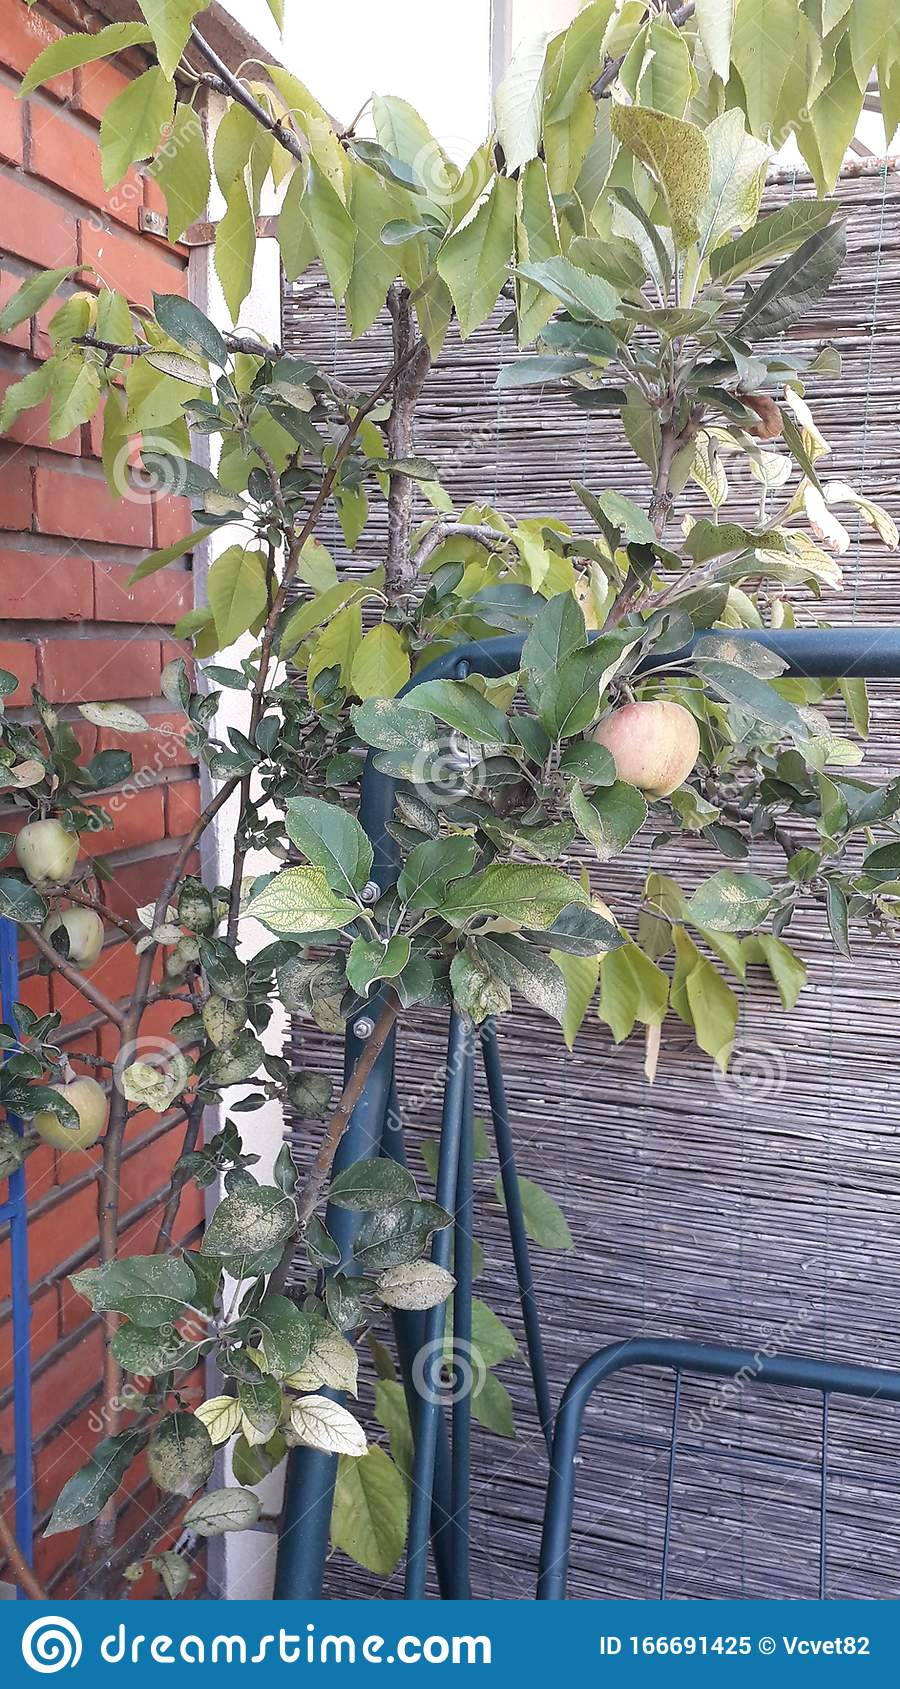 Green Tree With Fruit Apple Tree In The Pot On The City Terrace Urban Gardening Stock Image Image Of Organic Urban 166691425